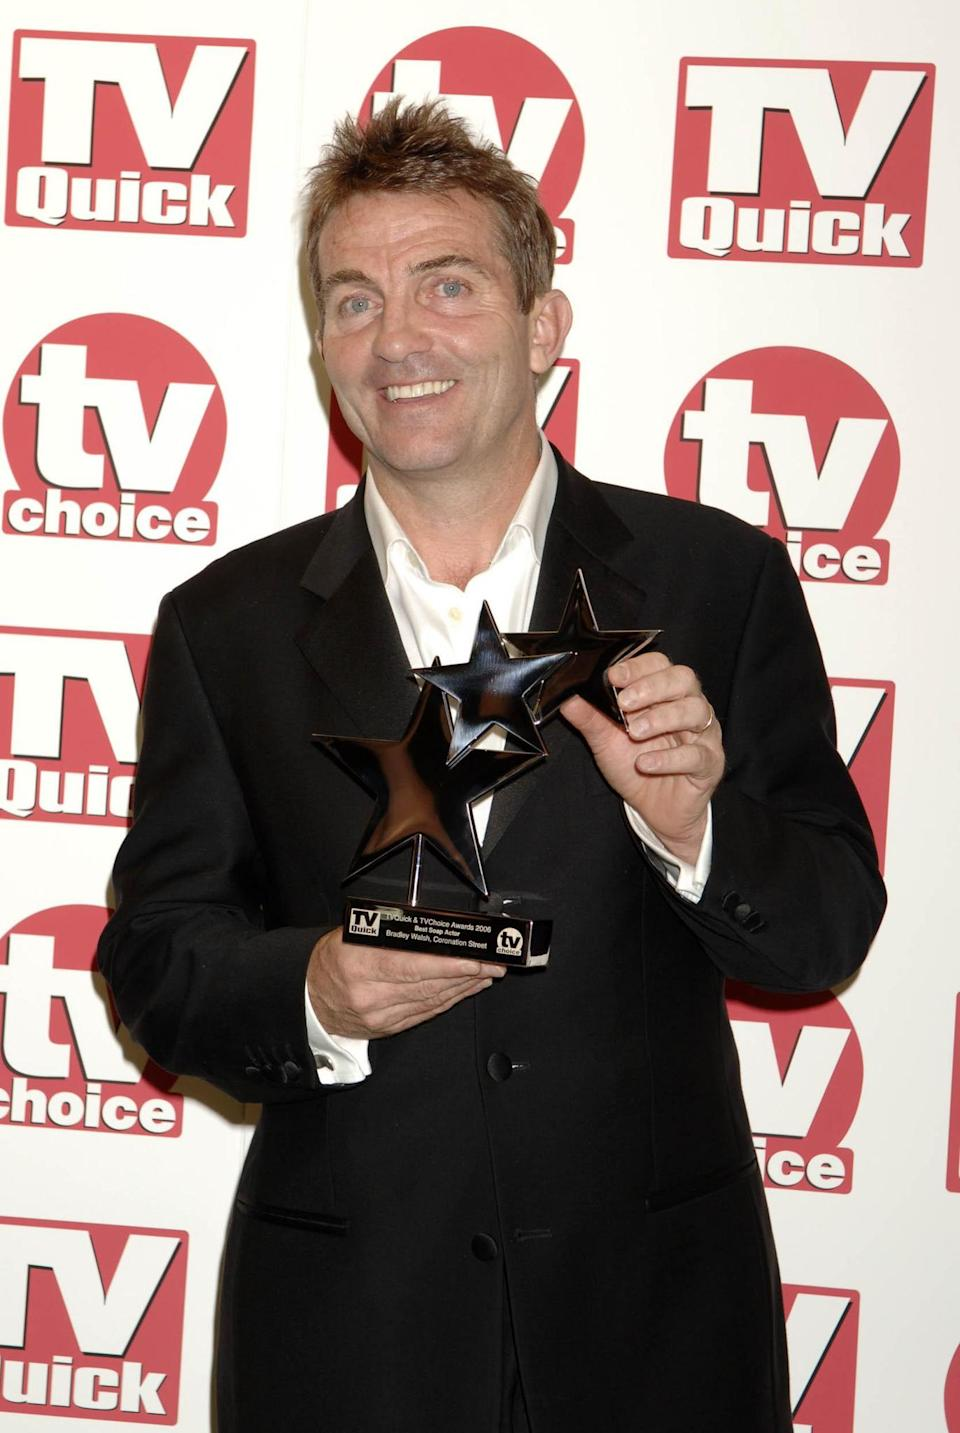 Bradley Walsh wins Best Soap Actor award, at the TV Quick and TV Choice Awards at the Dorchester Hotel, central London. (Photo by Yui Mok - PA Images/PA Images via Getty Images)